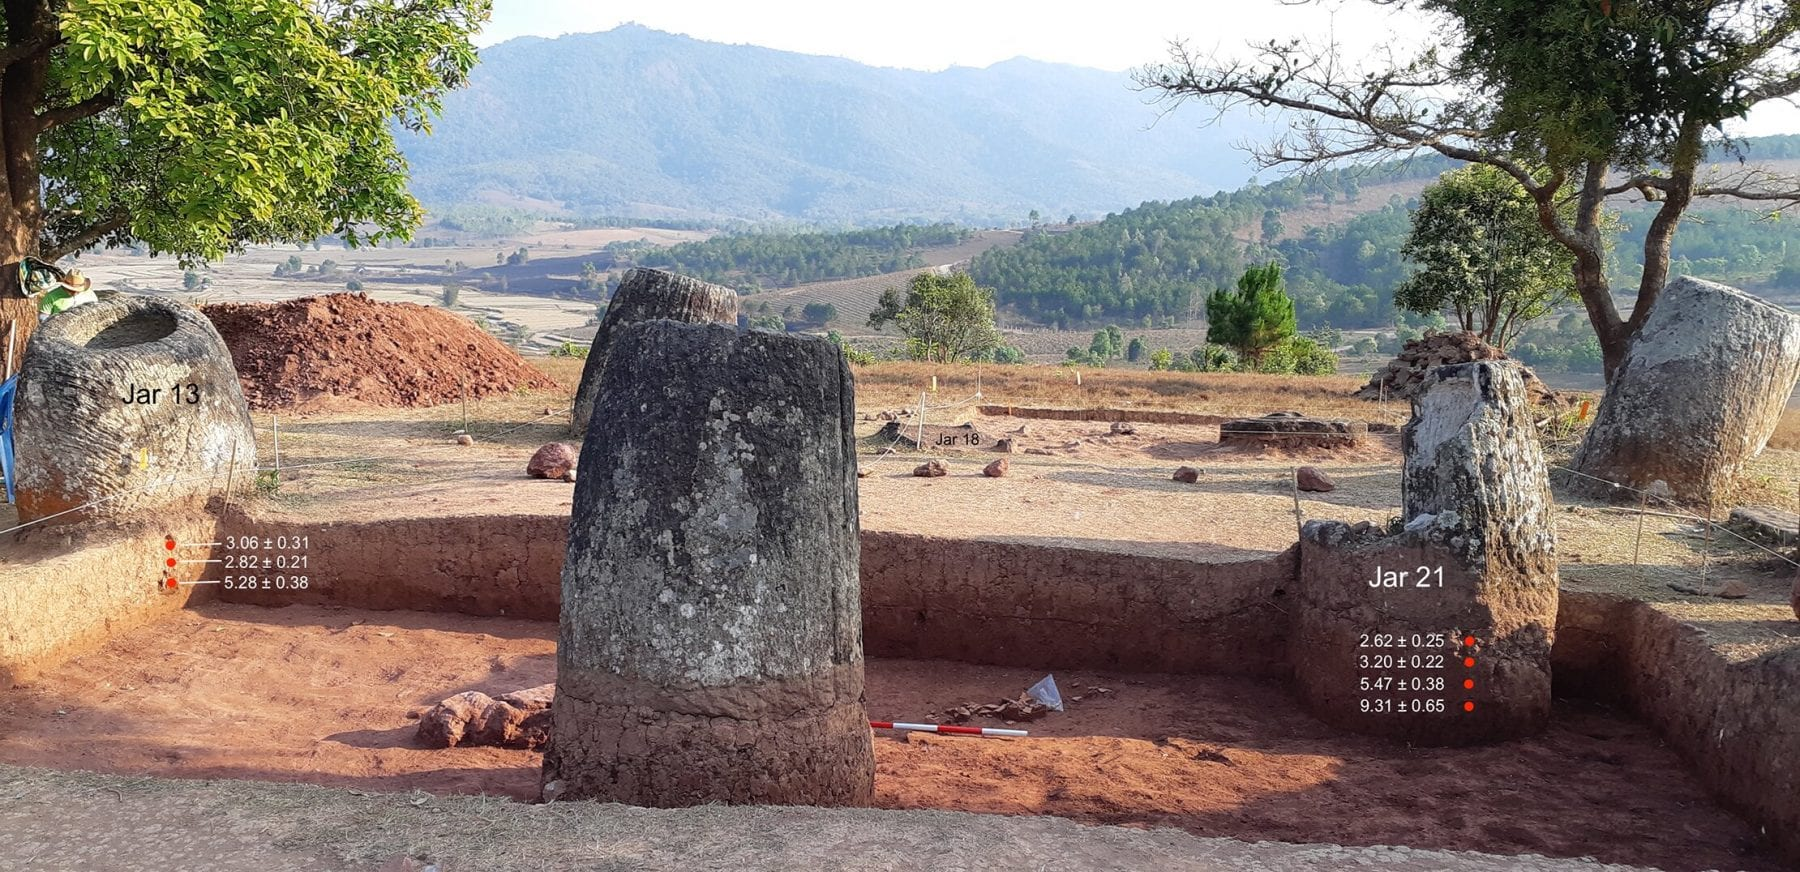 Location from which archaeologists took samples to study. Credit: Plain of Jars Archaeological Research Project